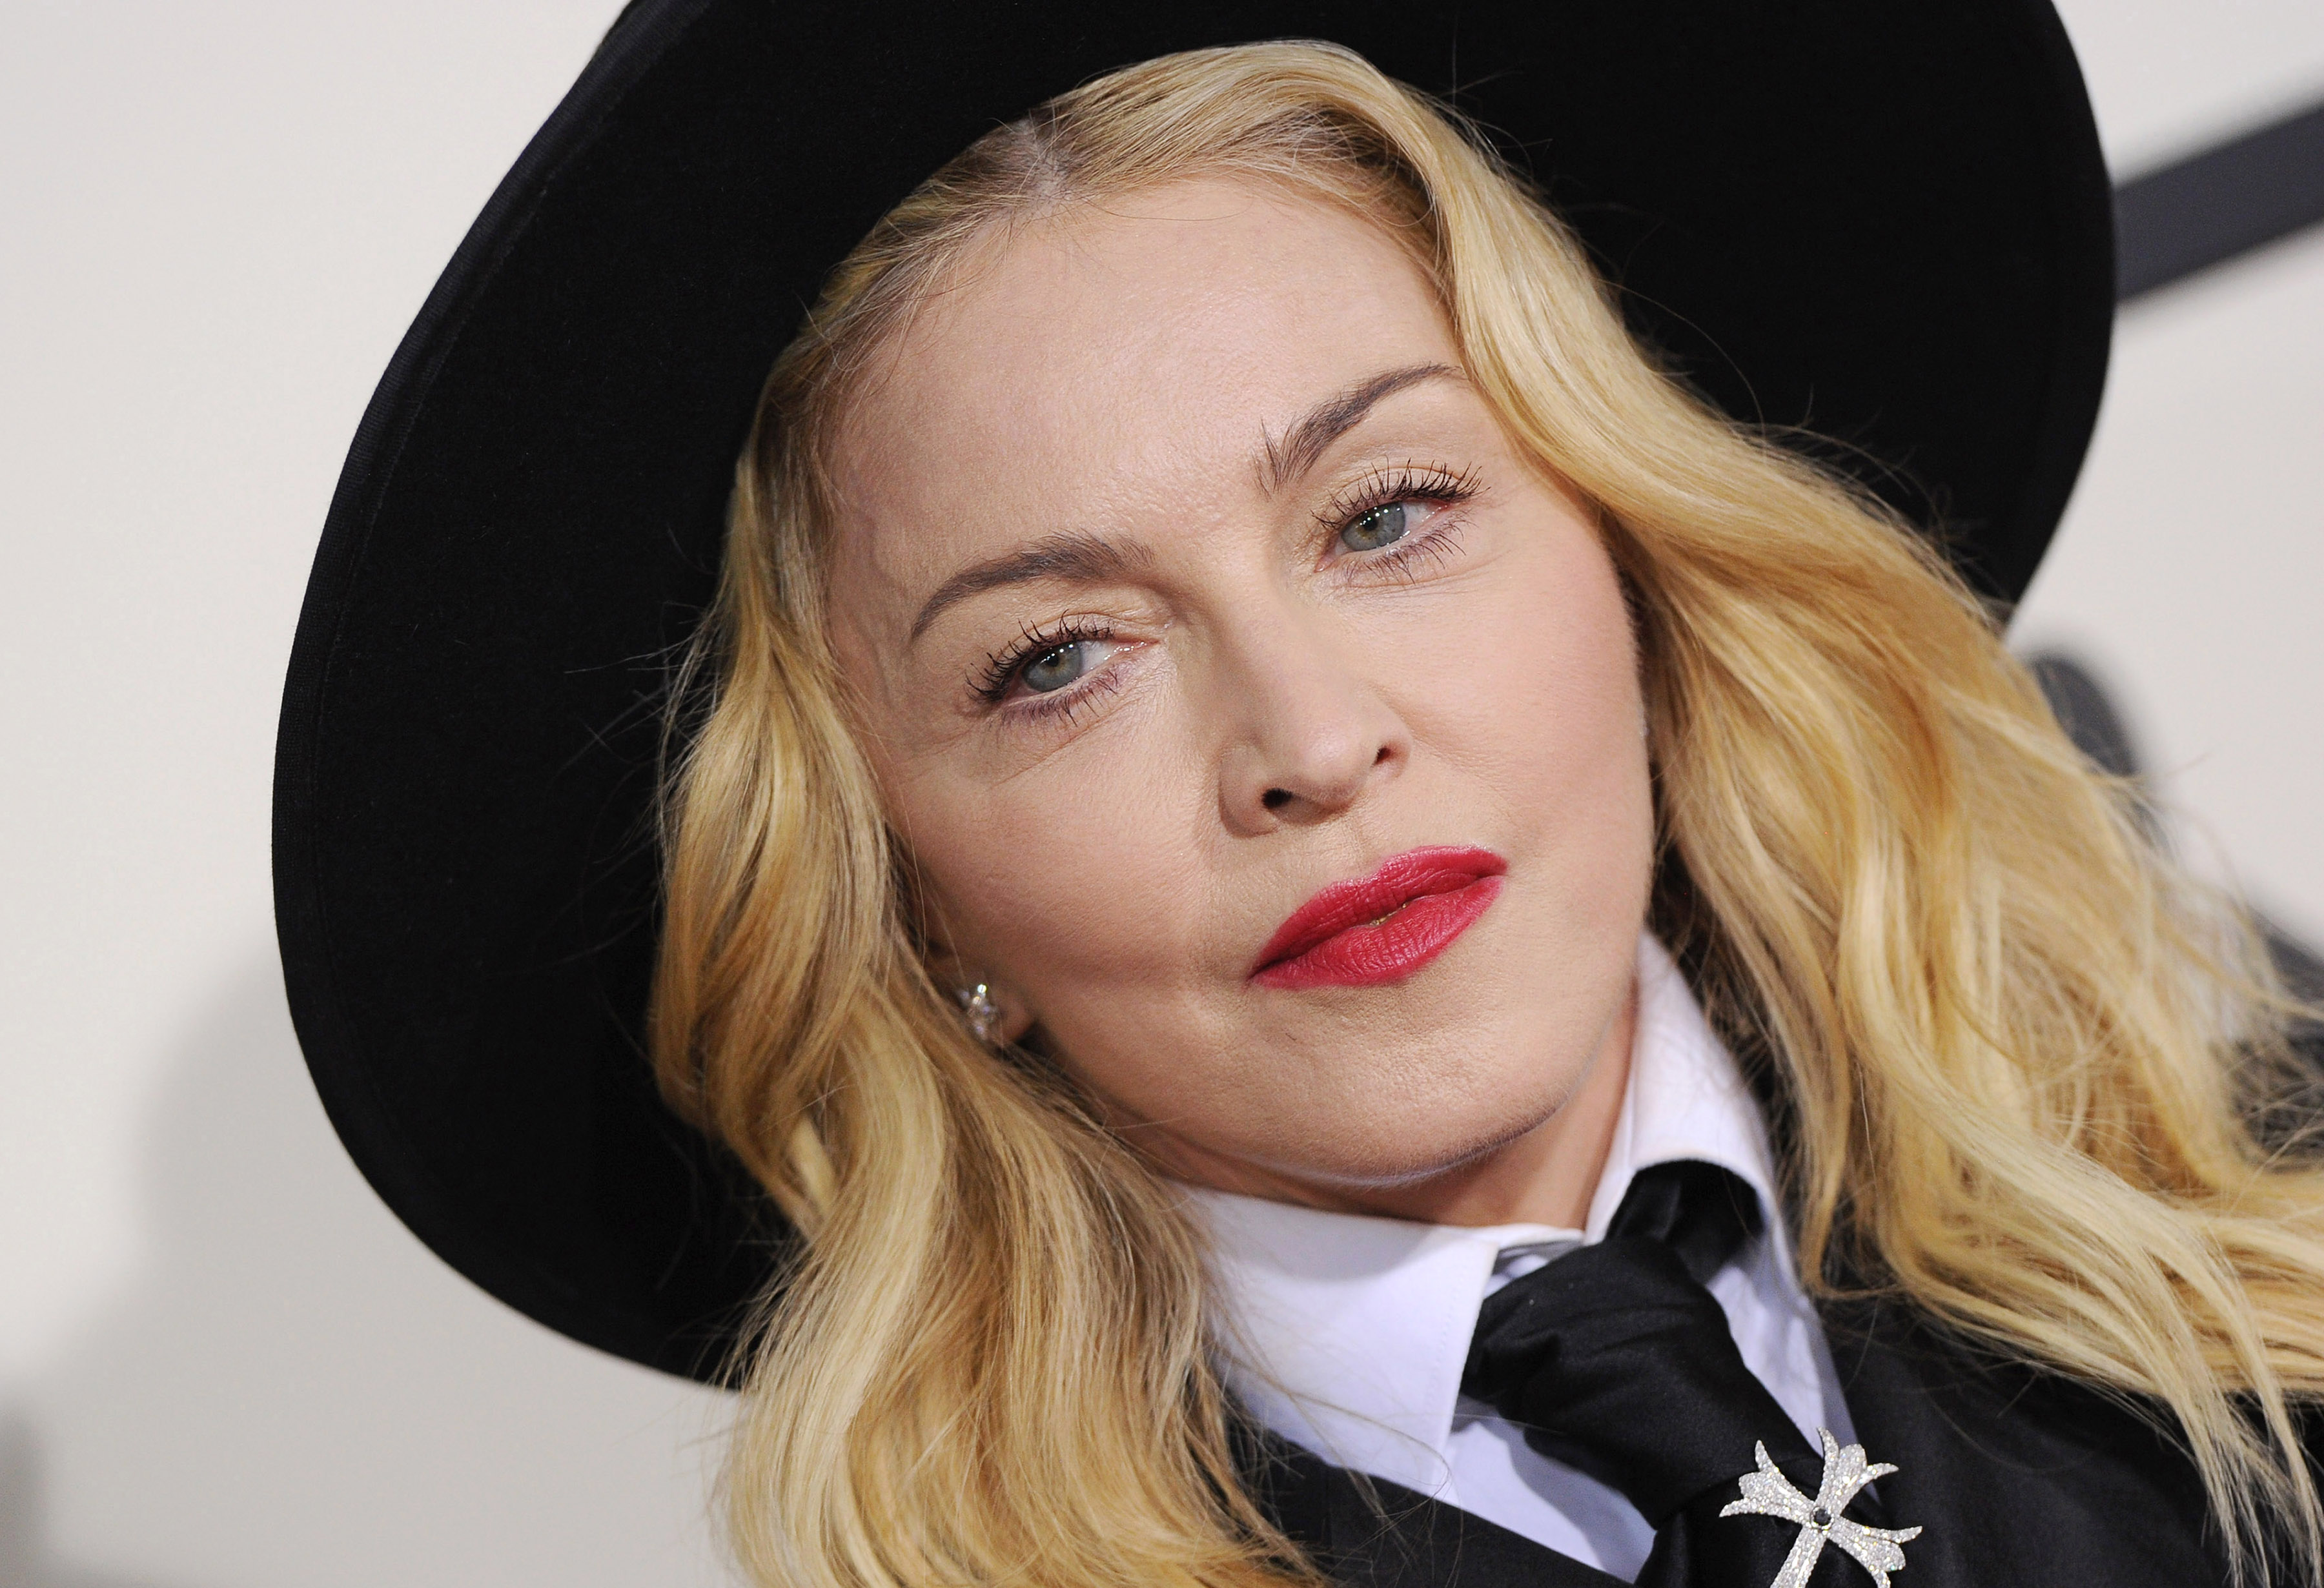 LOS ANGELES, CA - JANUARY 26:  Singer Madonna arrives at the 56th GRAMMY Awards at Staples Center on January 26, 2014 in Los